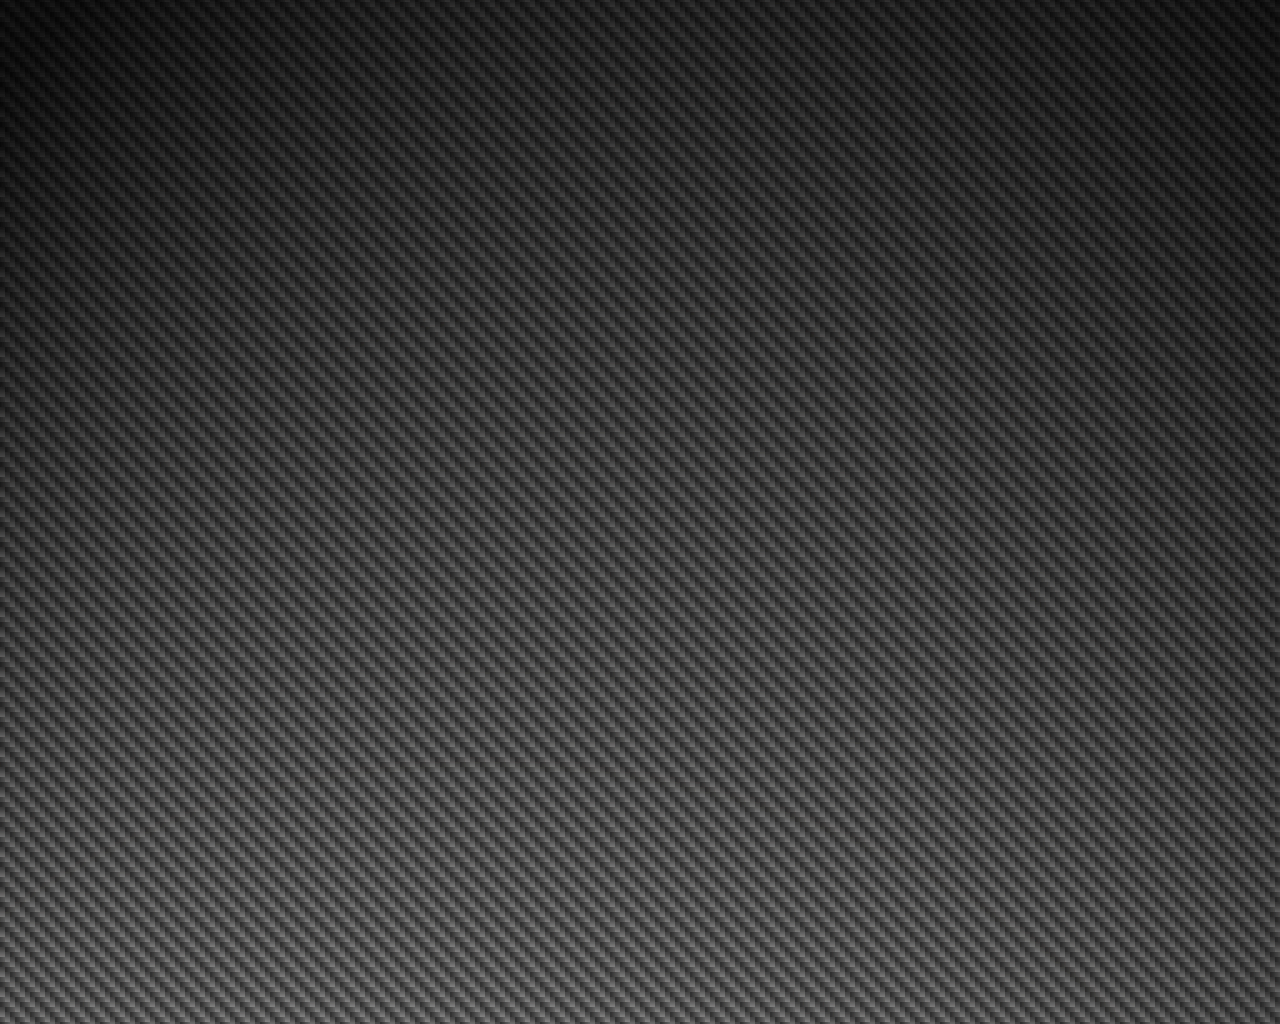 Carbon Fiber Texture Wallpapers Top Free Carbon Fiber